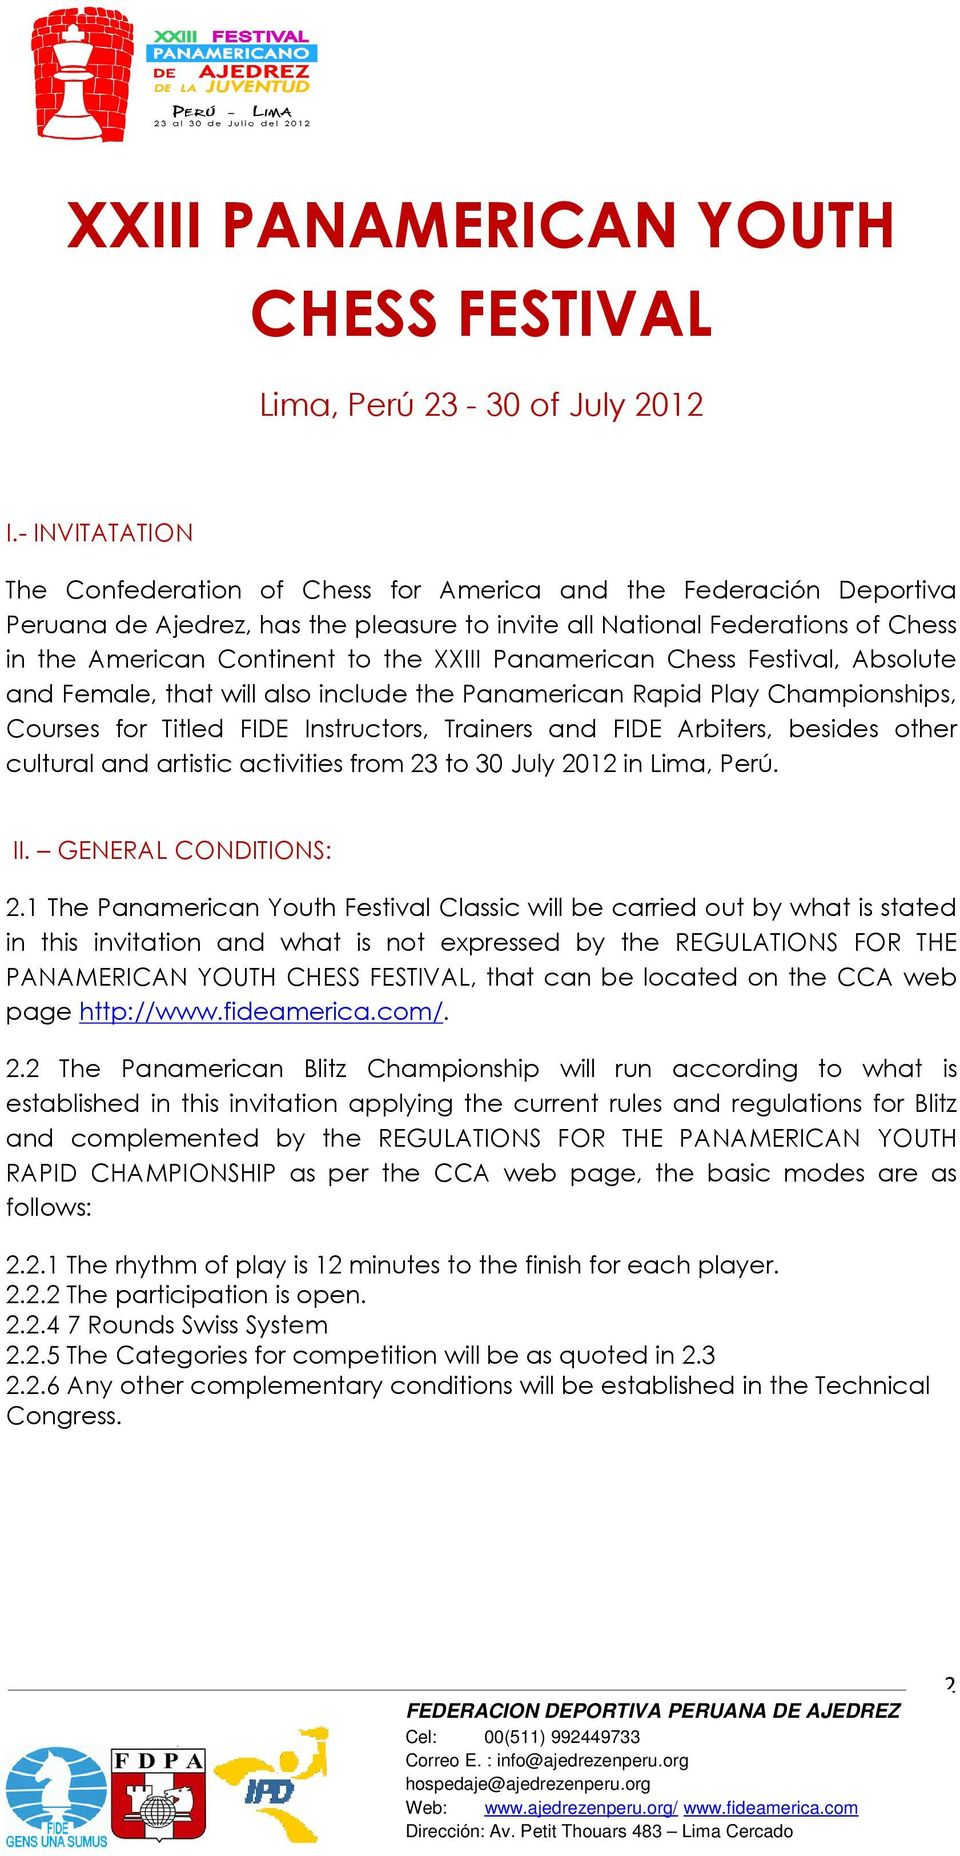 XXIII Panamerican Chess Festival, Absolute and Female, that will also include the Panamerican Rapid Play Championships, Courses for Titled FIDE Instructors, Trainers and FIDE Arbiters, besides other